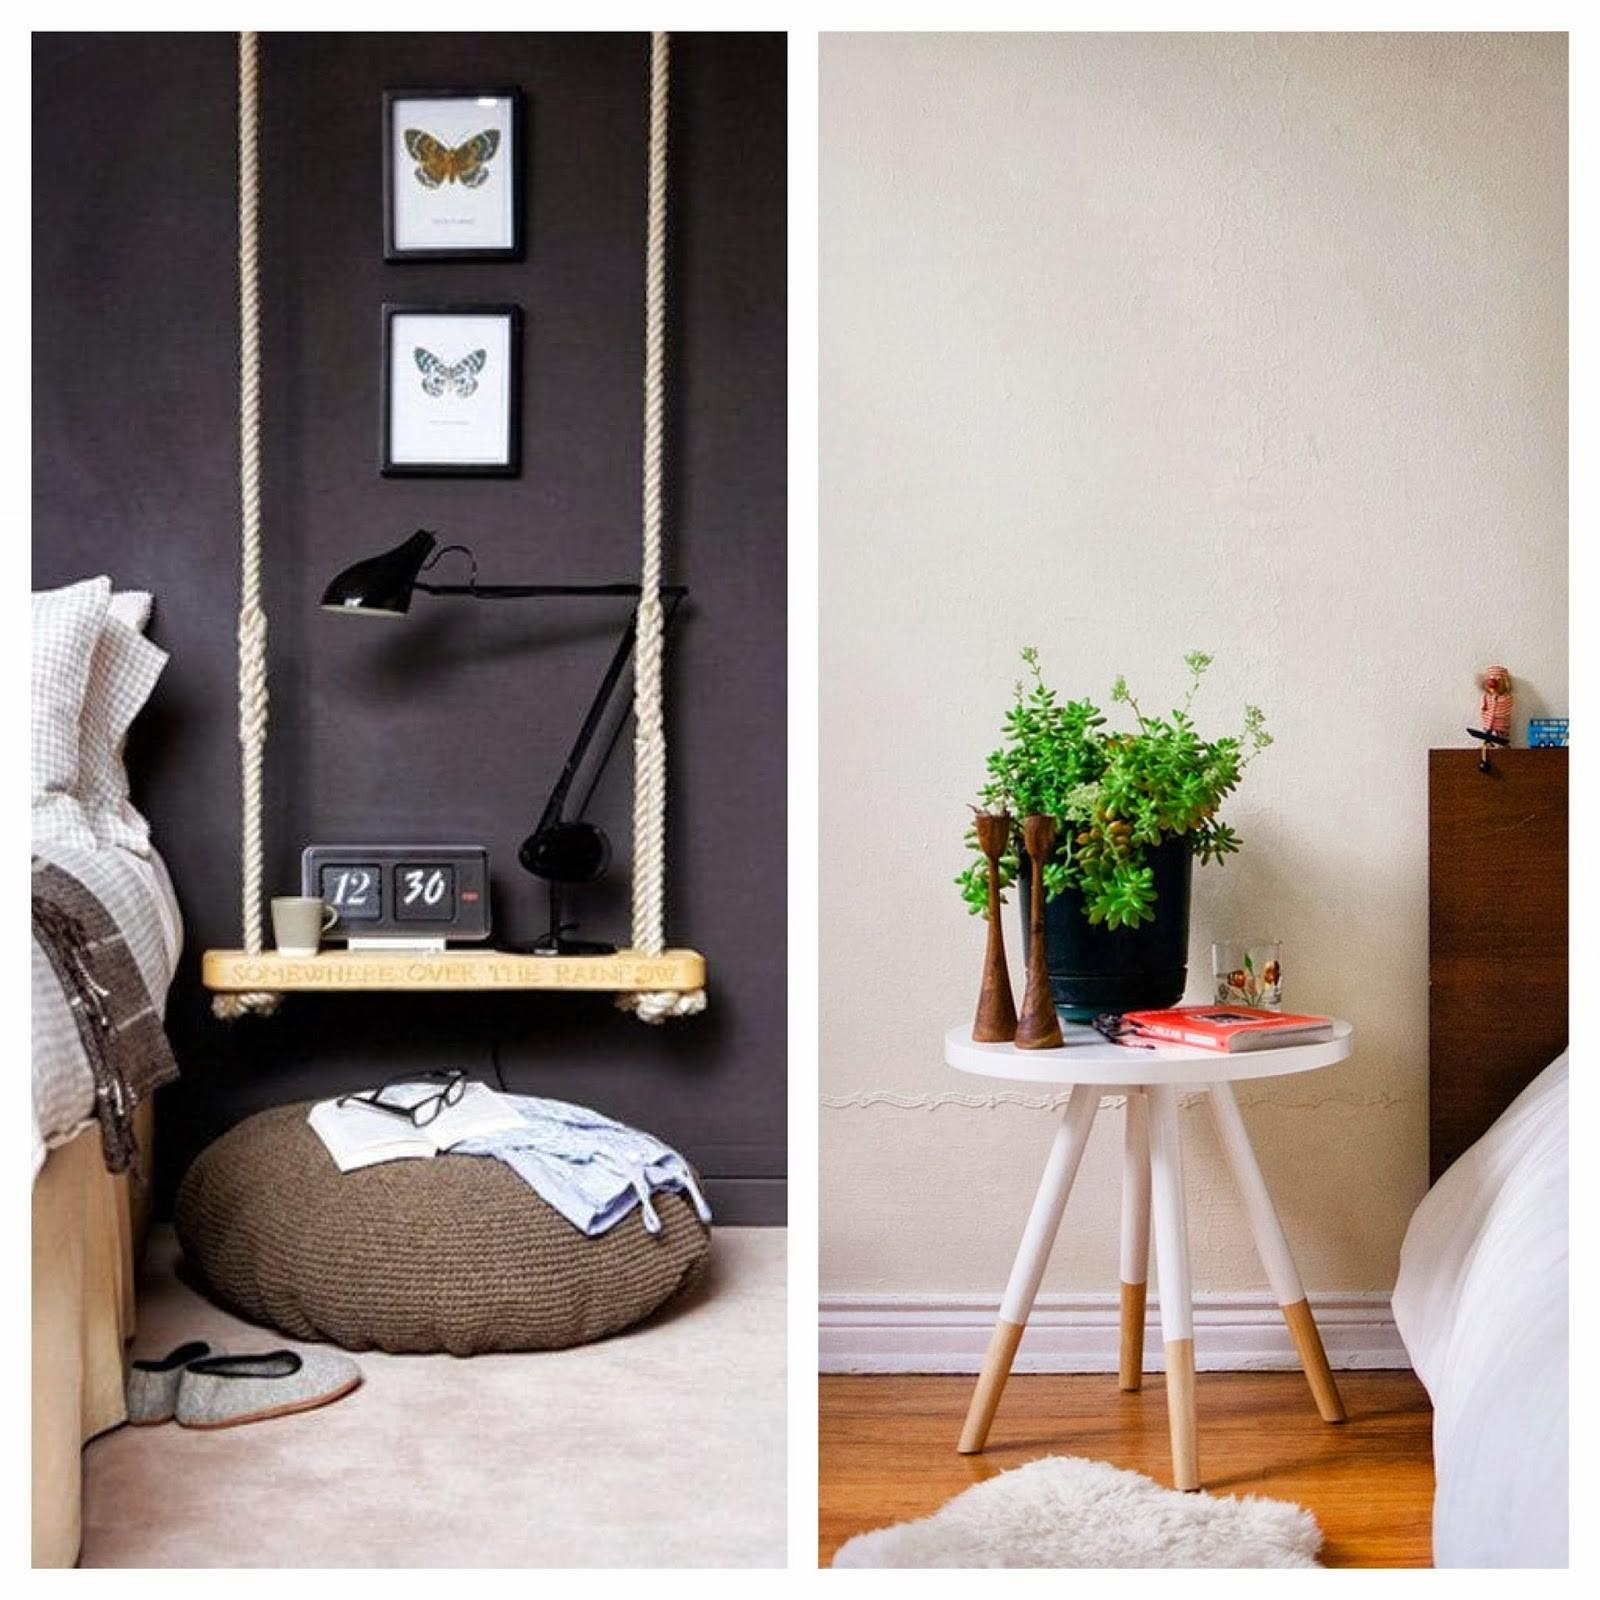 Dashing Diy Bedside Table Butterfly Wall